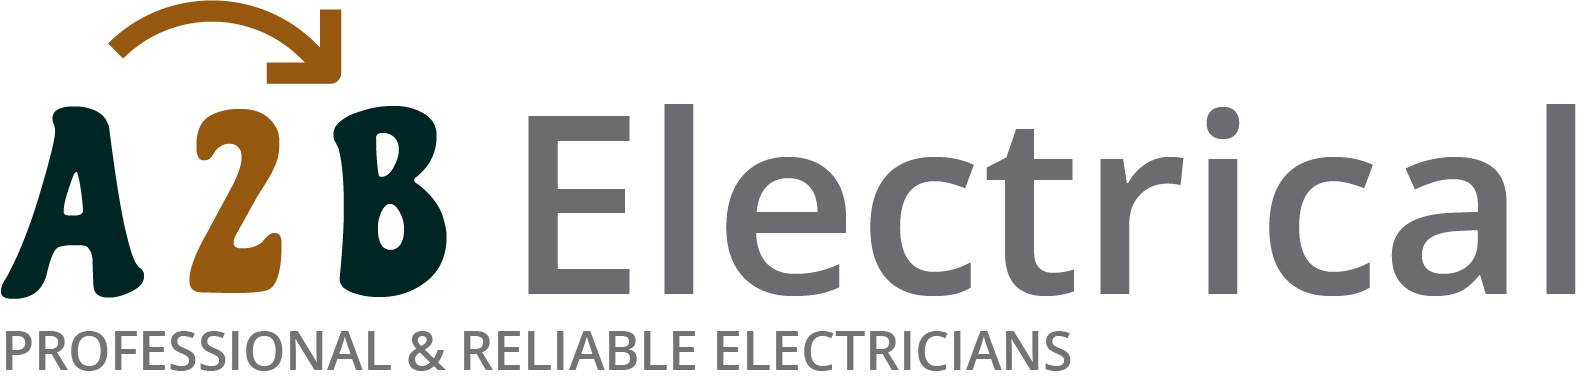 If you have electrical wiring problems in Poplar, we can provide an electrician to have a look for you.